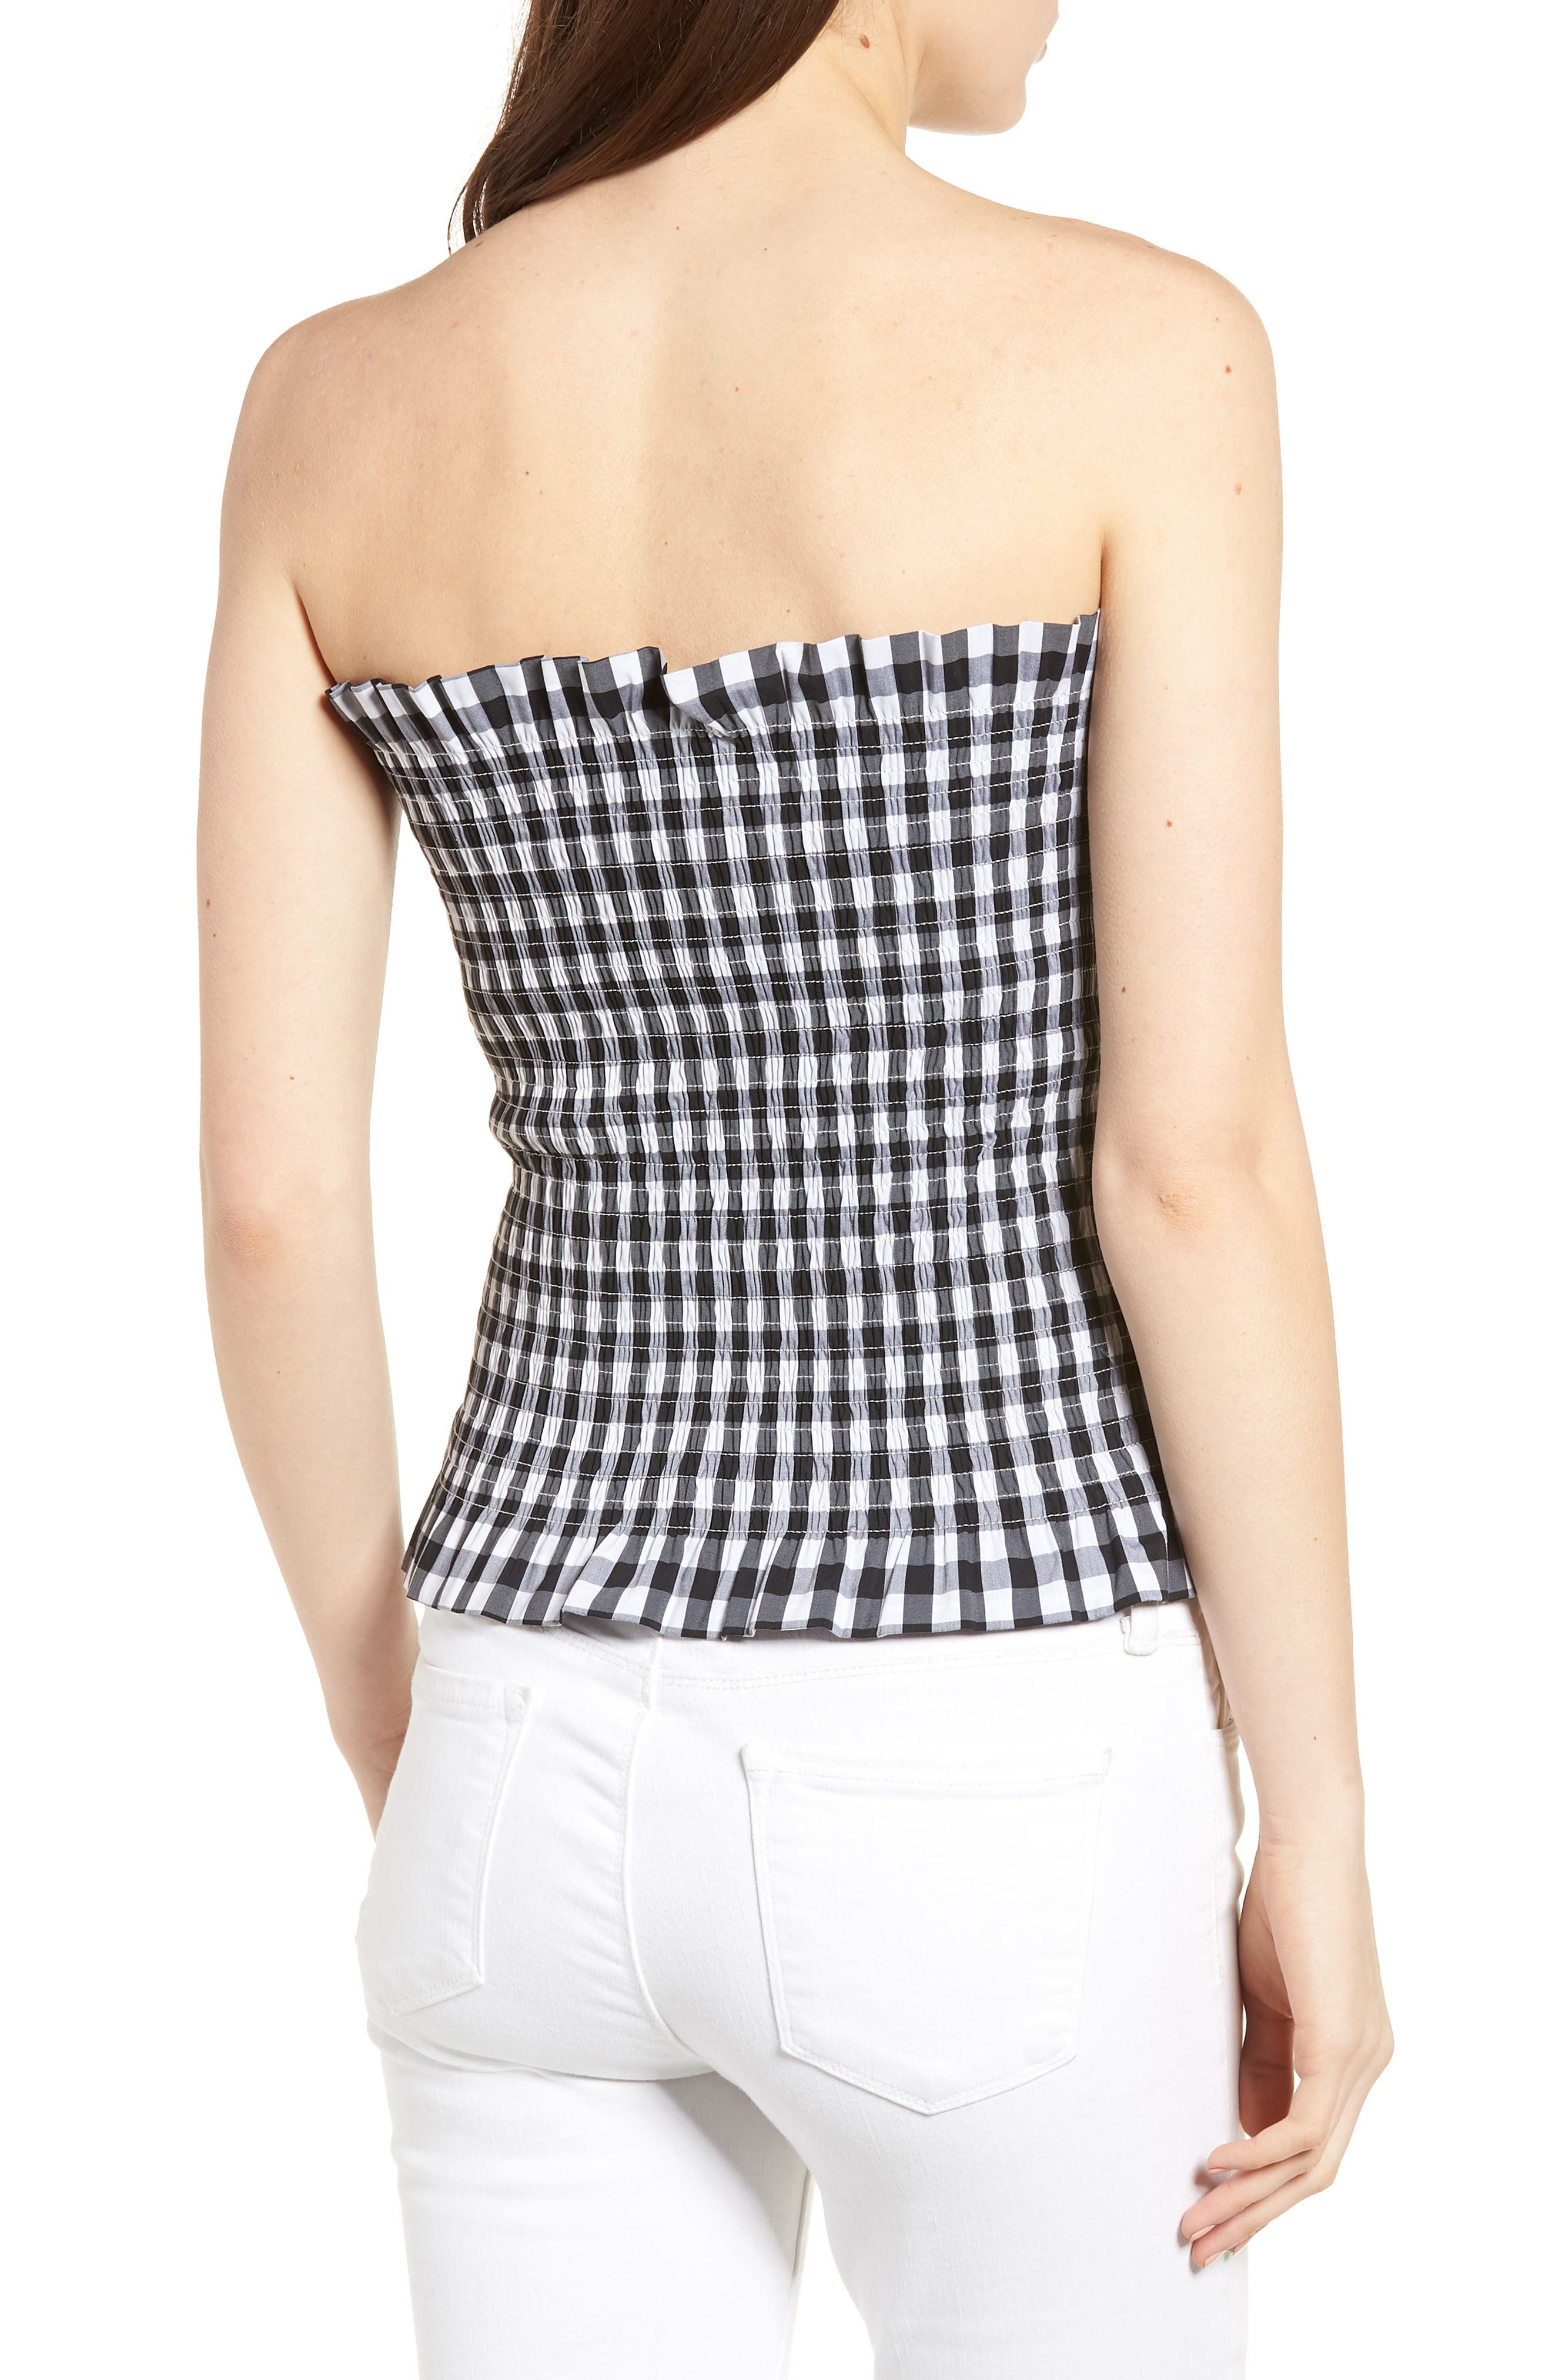 Bishop + Young Gingham Tube Top,                             Alternate thumbnail 2, color,                             001